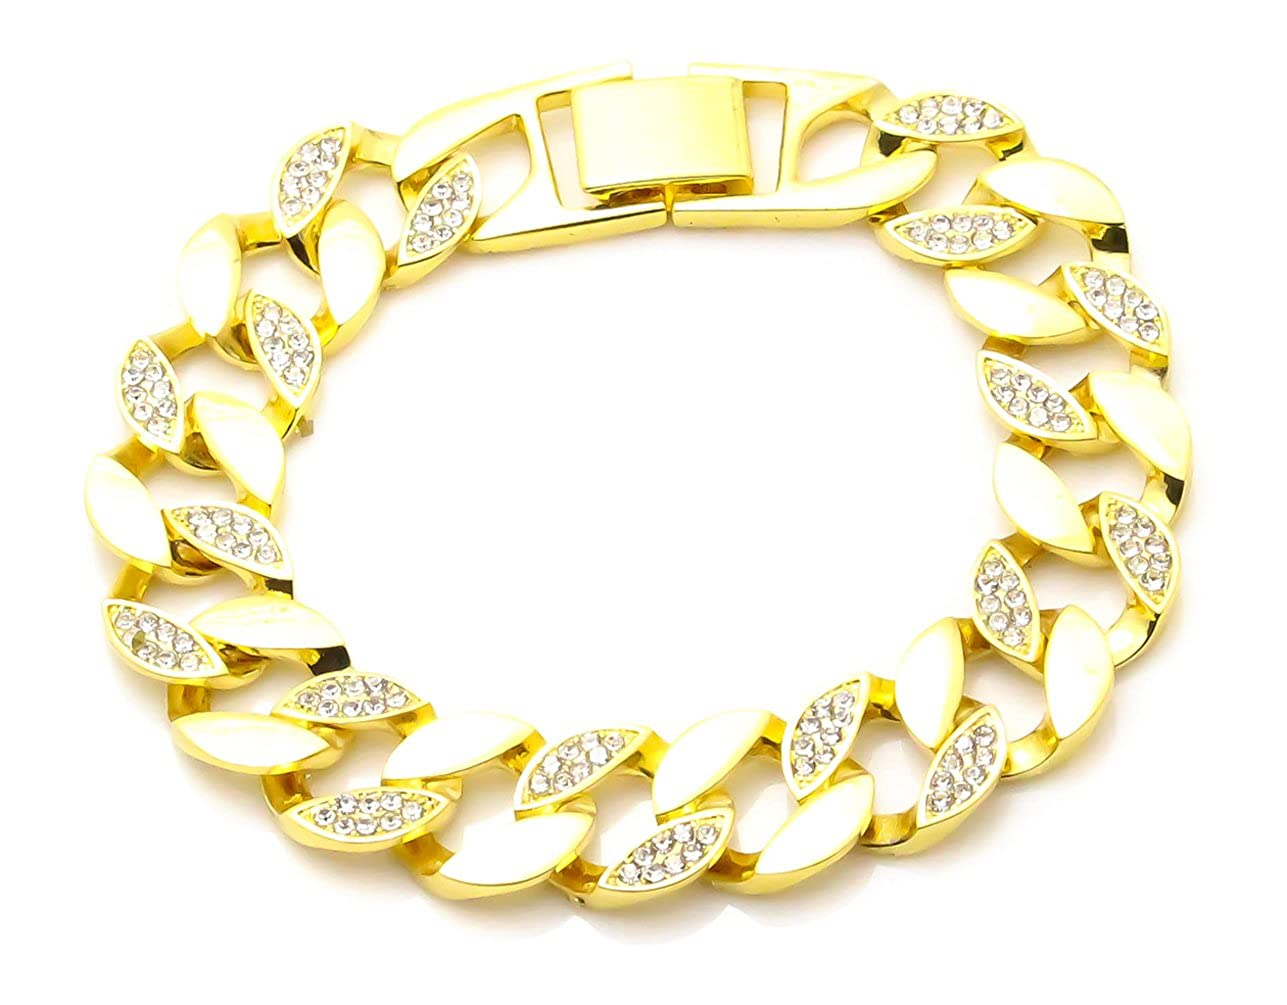 Fusamk Hip Hop Plated 18K Gold Stainless Steel Iced Out Crystal Cuba Chain Bracelet, 8.5inches KLEzbbt501-Gold